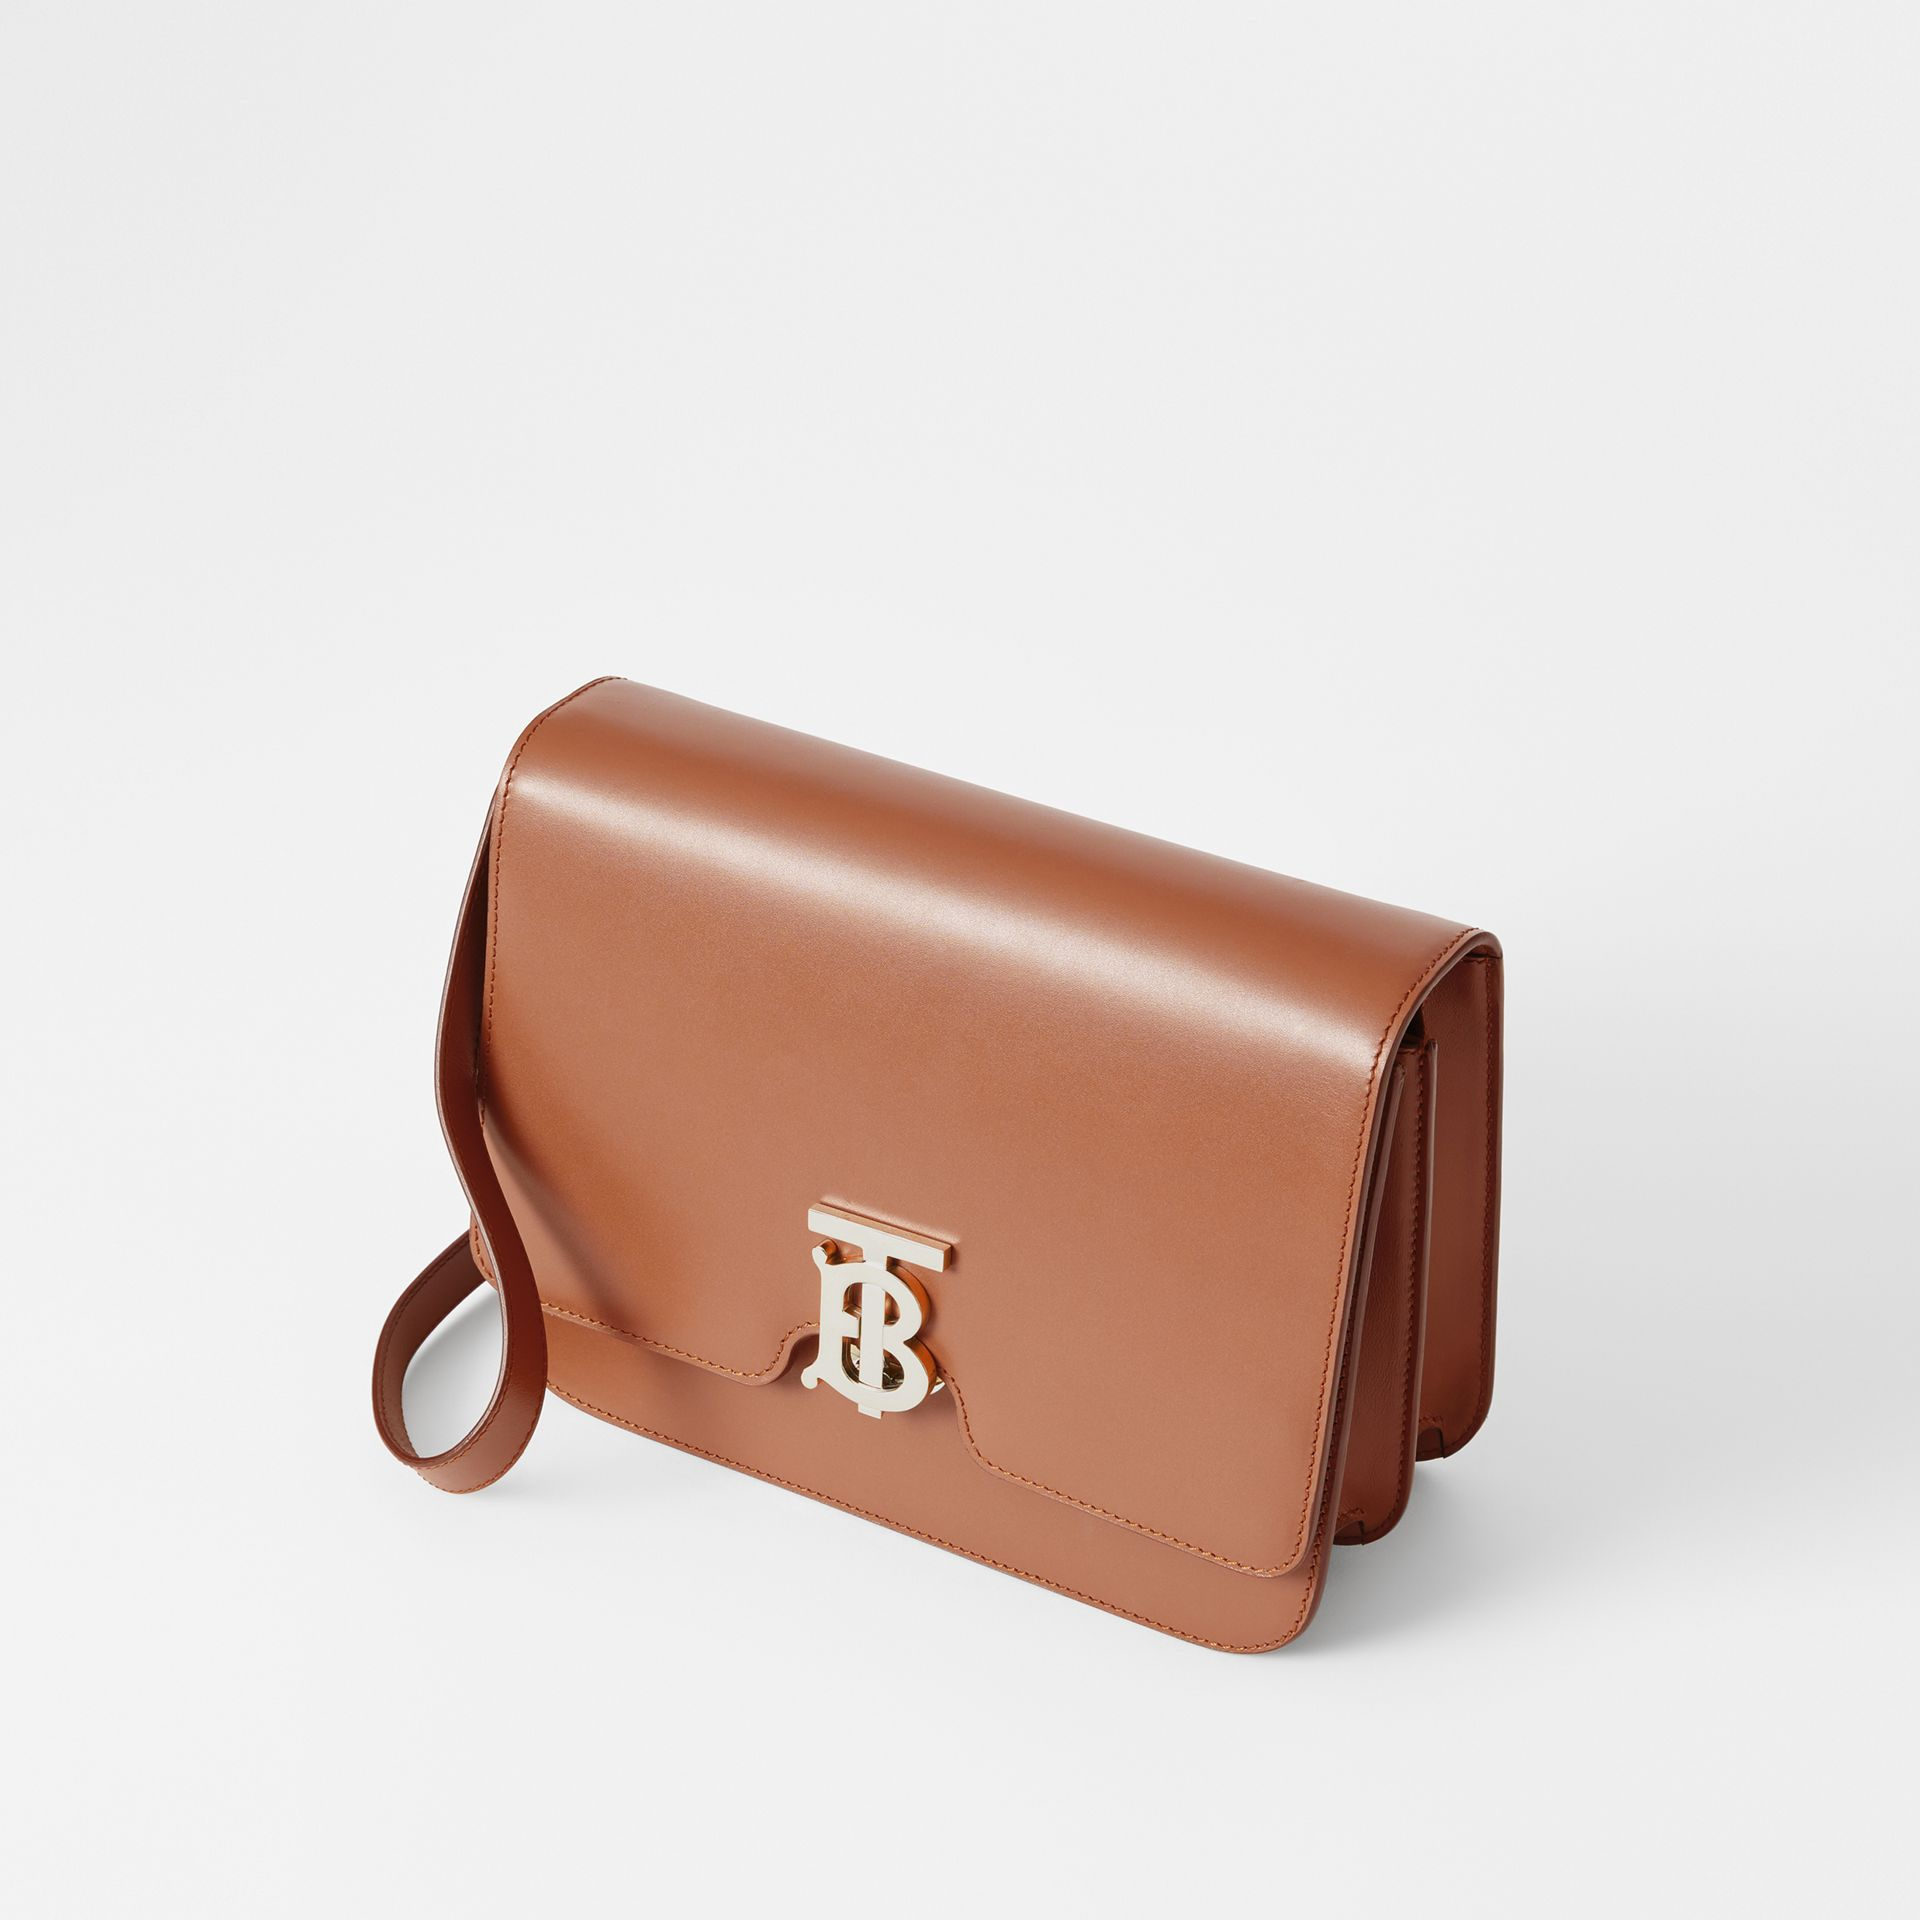 Medium Leather TB Bag in Malt Brown - Women | Burberry Hong Kong - gallery image 3